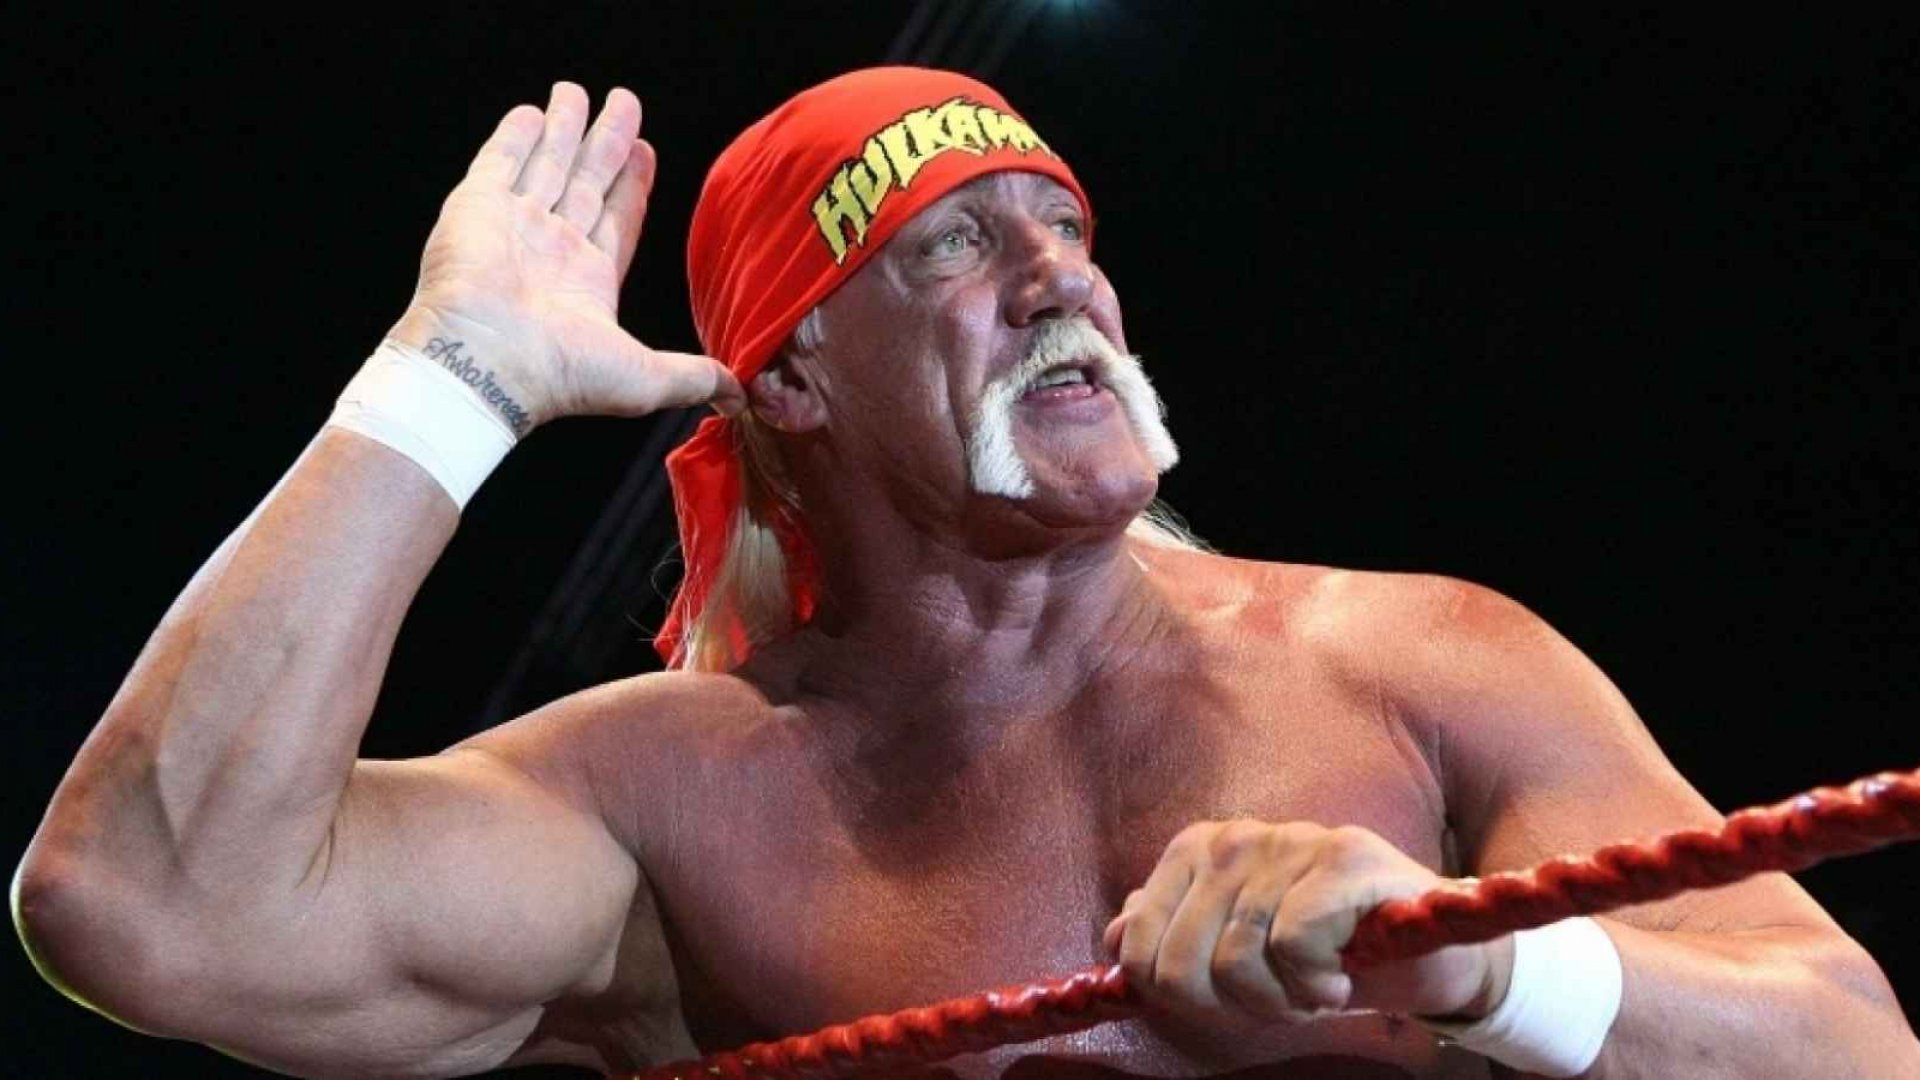 Hulk Hogan Sex Tape Trial: What You Say in a Chat Room Can Be Used Against You